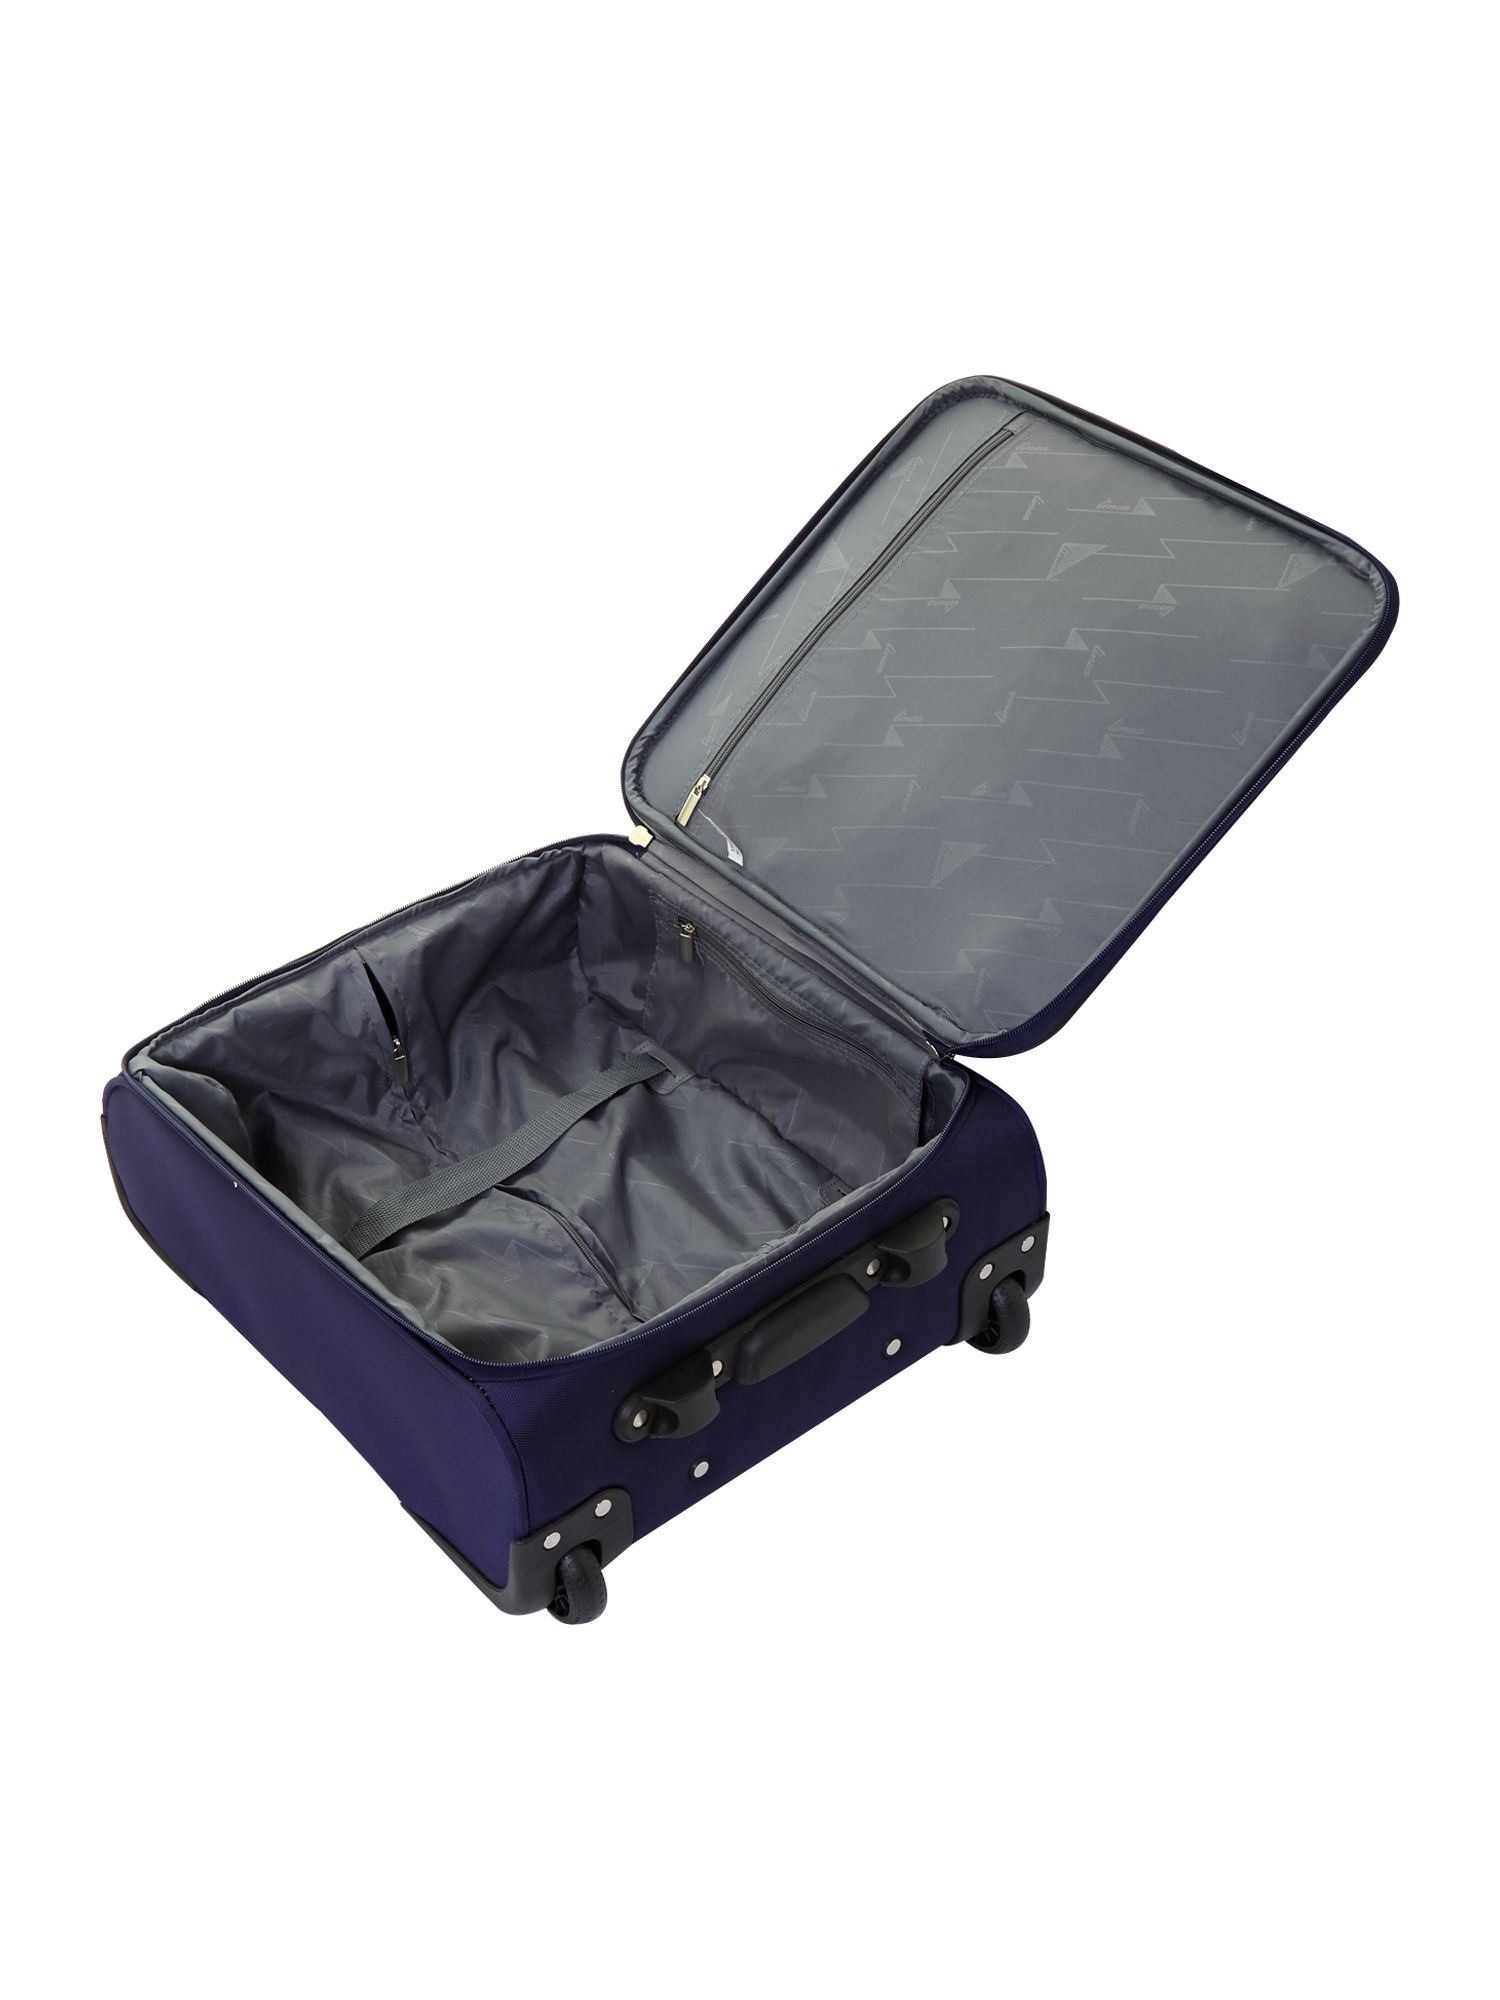 All airline compliant cabin navy